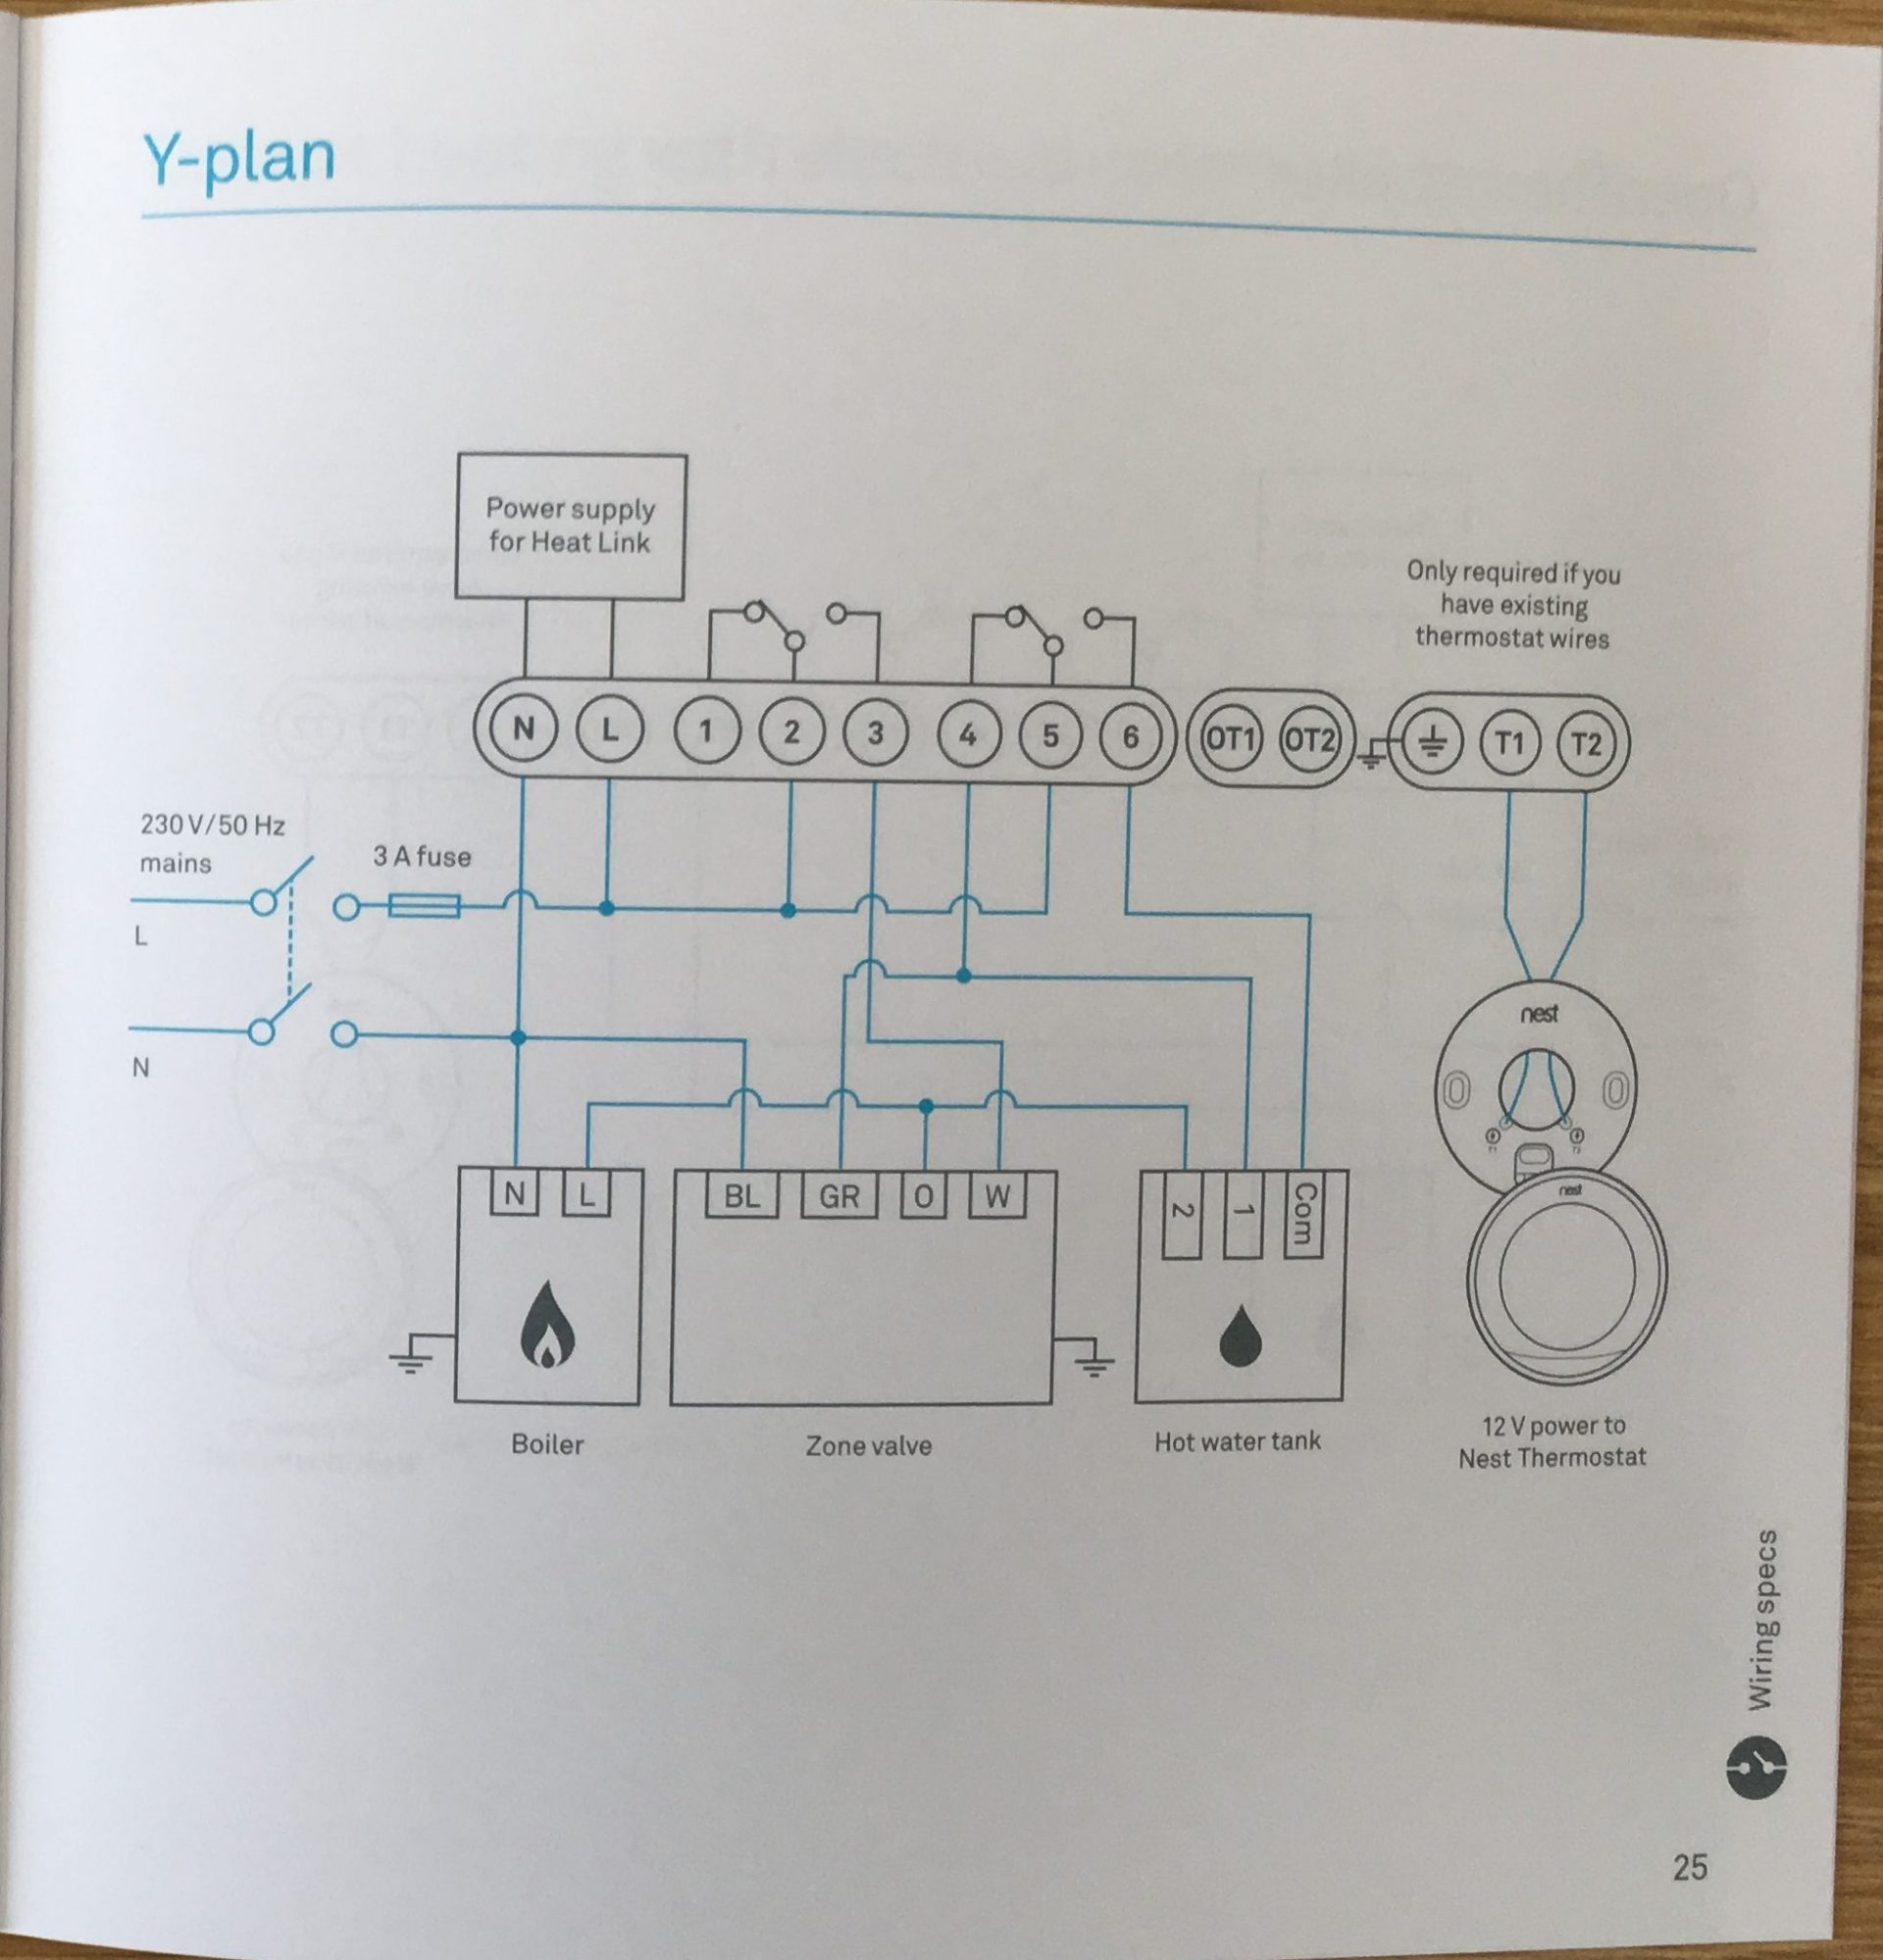 How To Install The Nest Learning Thermostat (3Rd Gen) In A Y-Plan - The Nest Wiring Diagram